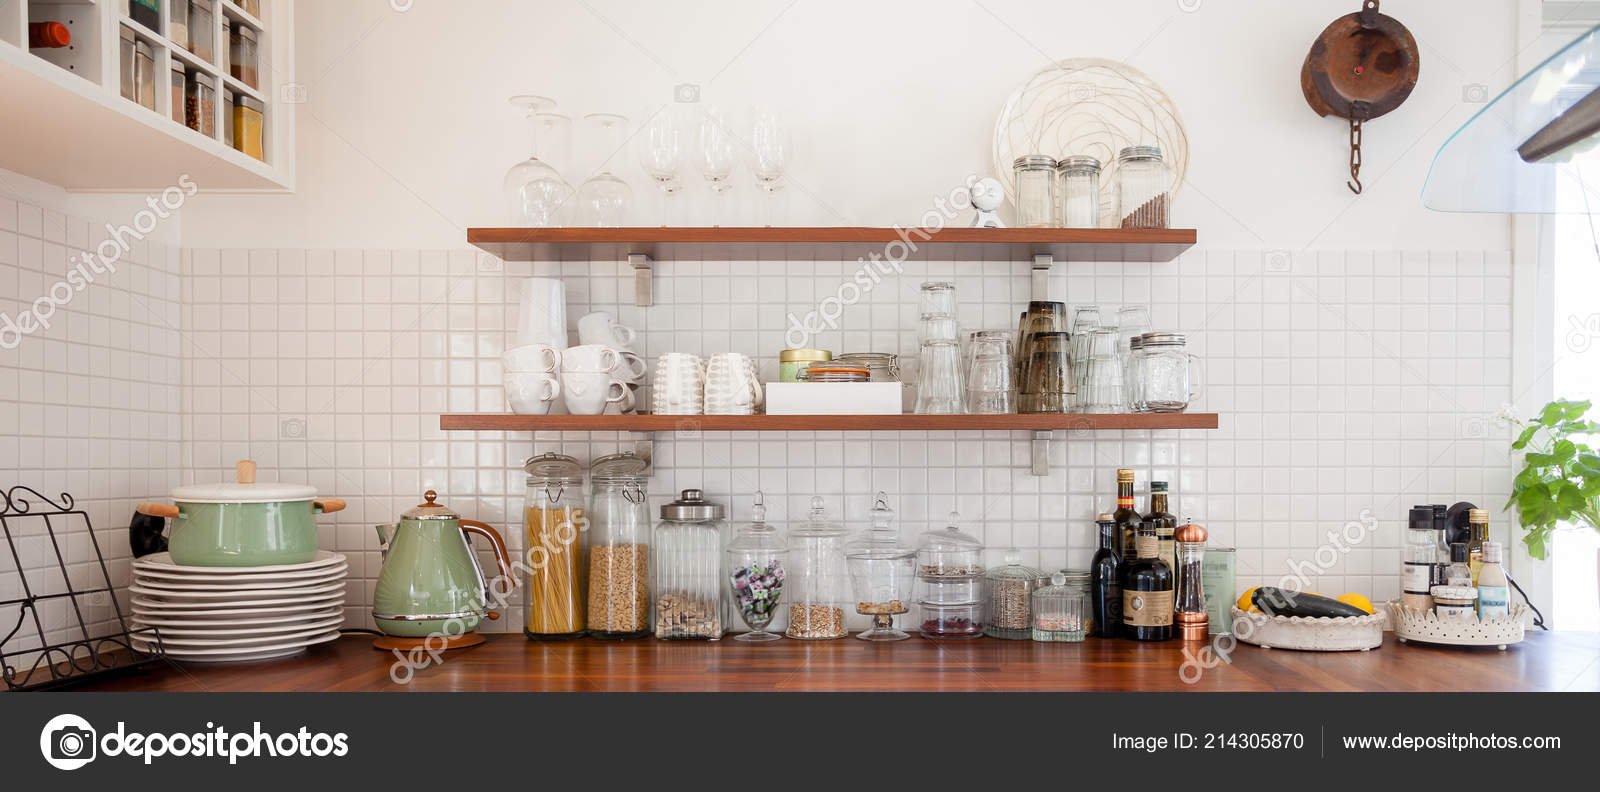 Banner Kitchen Interior Table White Cupboards Stock Photo